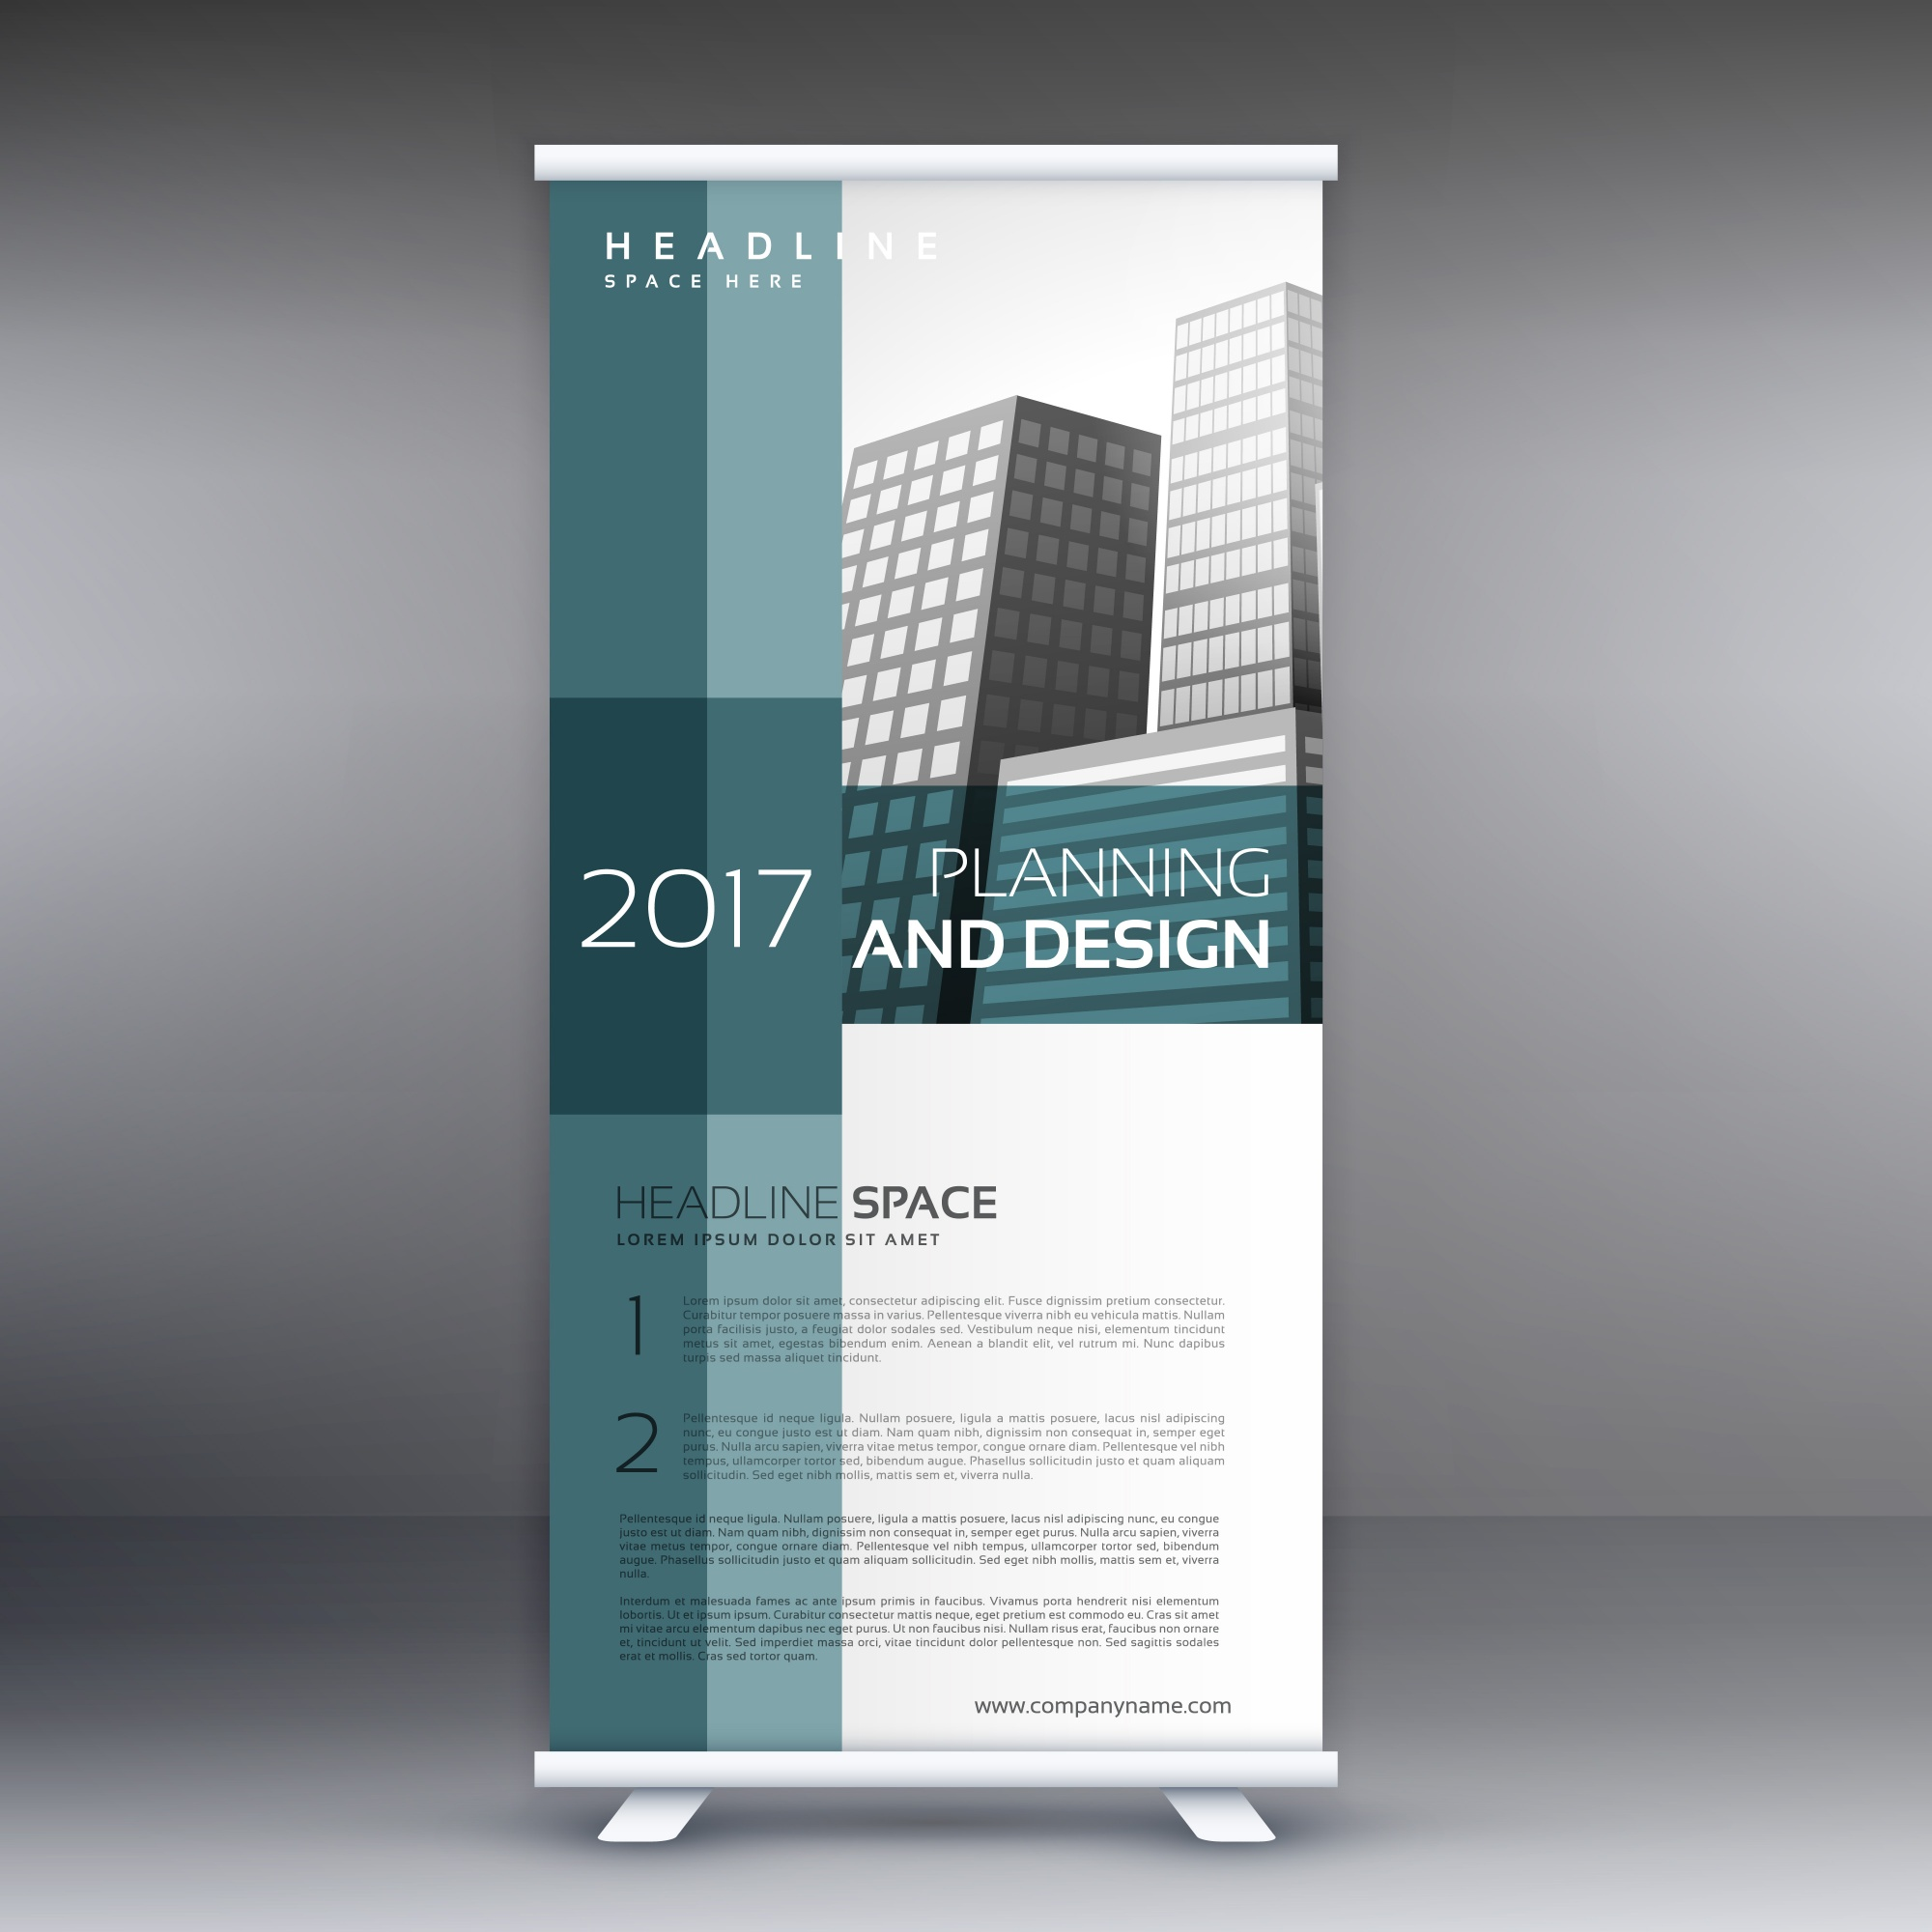 Professionelle Roll up Standby Banner Vektor-Design-Vorlage